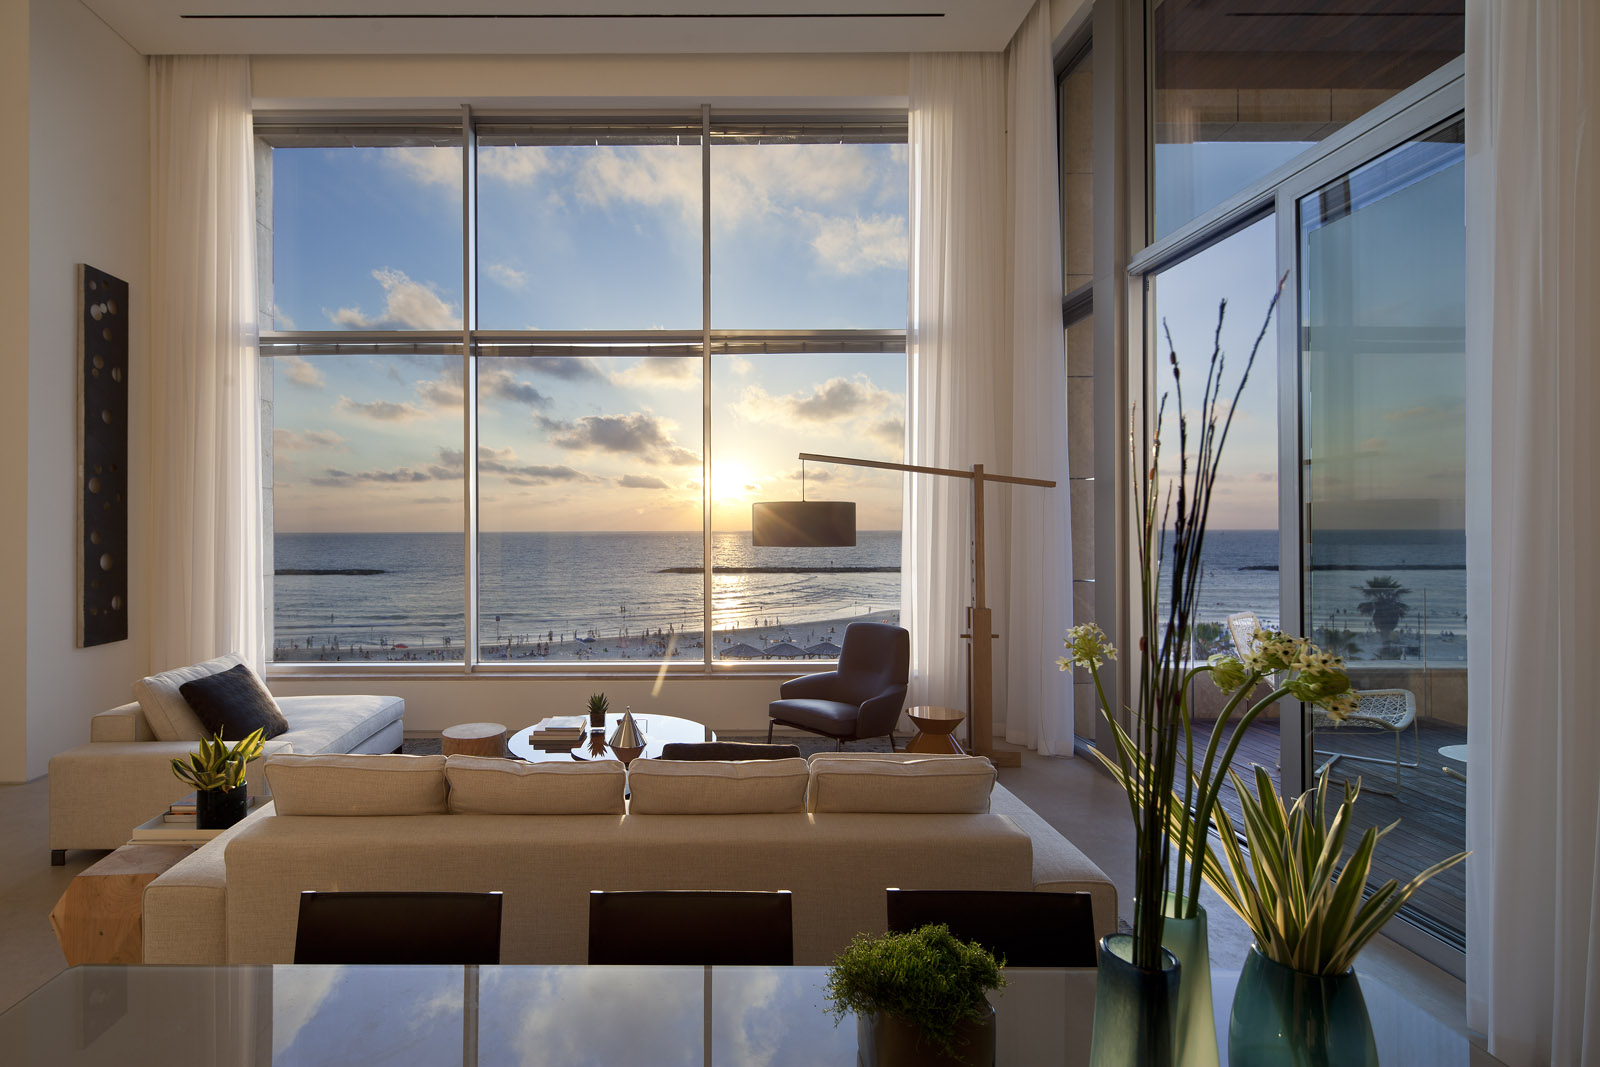 Each apartment in Herbert Samuel 48 has a sea view. Photo by Amit Giron